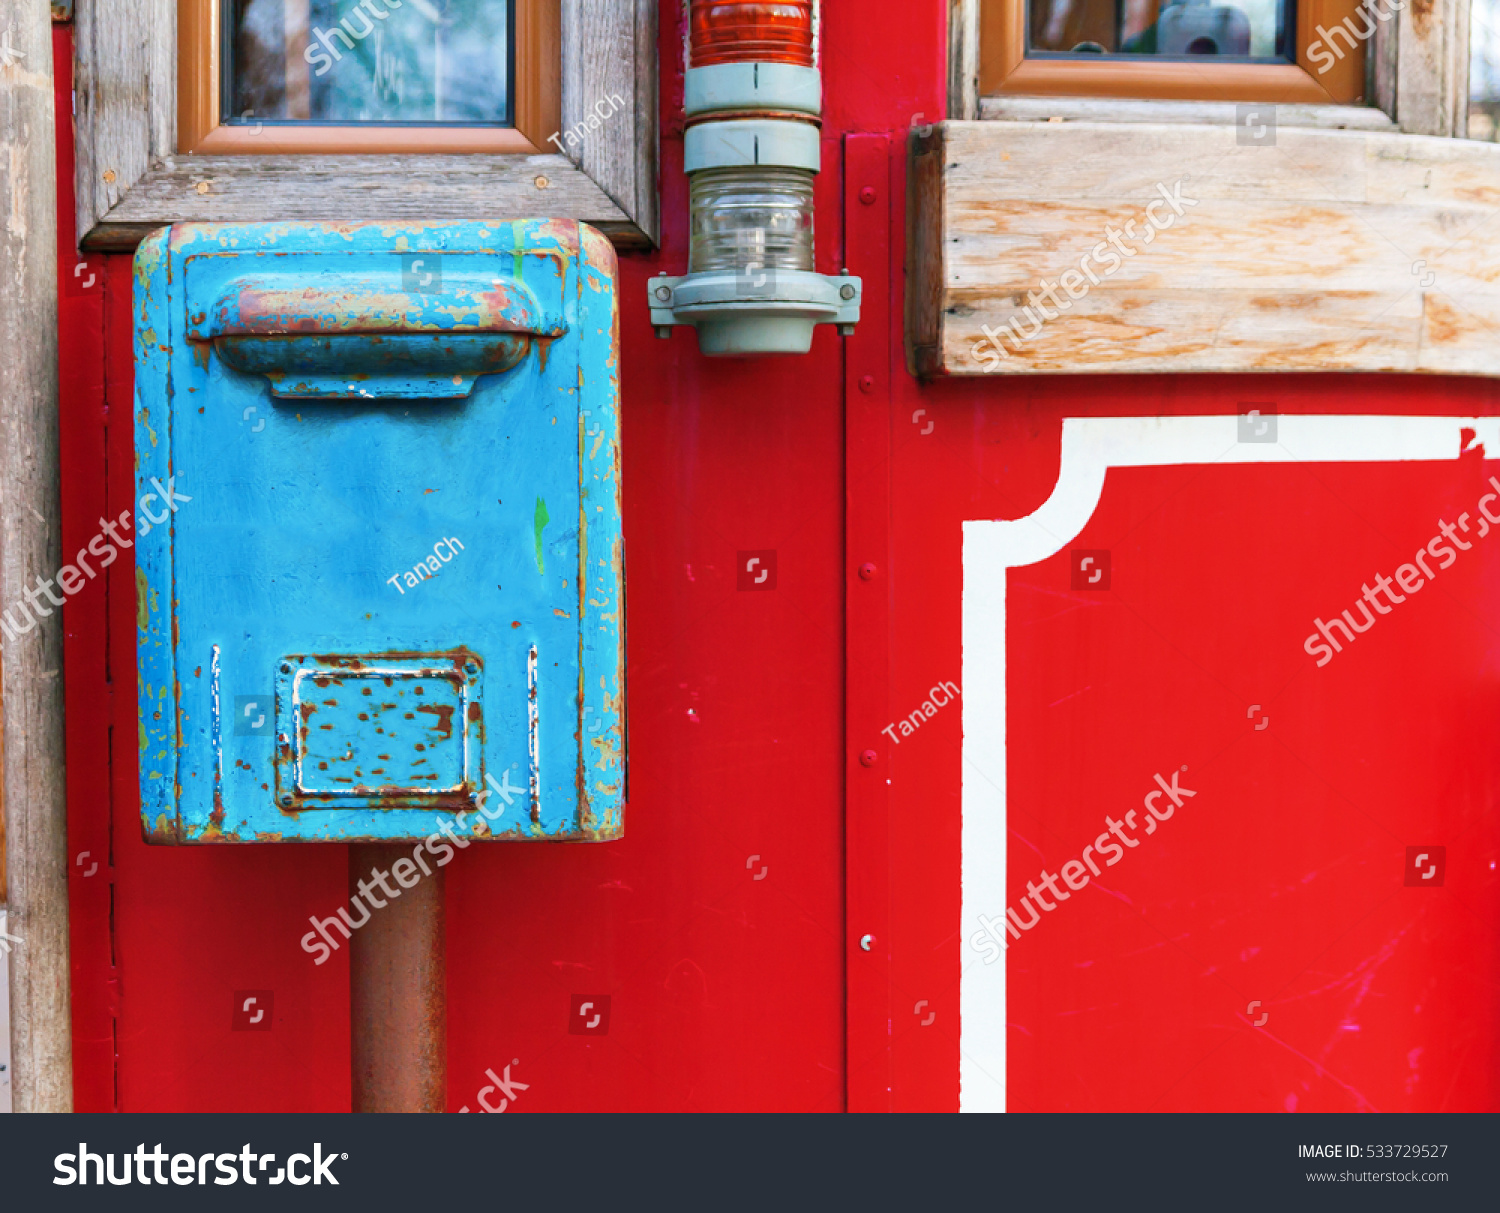 Old Blue Mailbox Hanging On Red Wall.